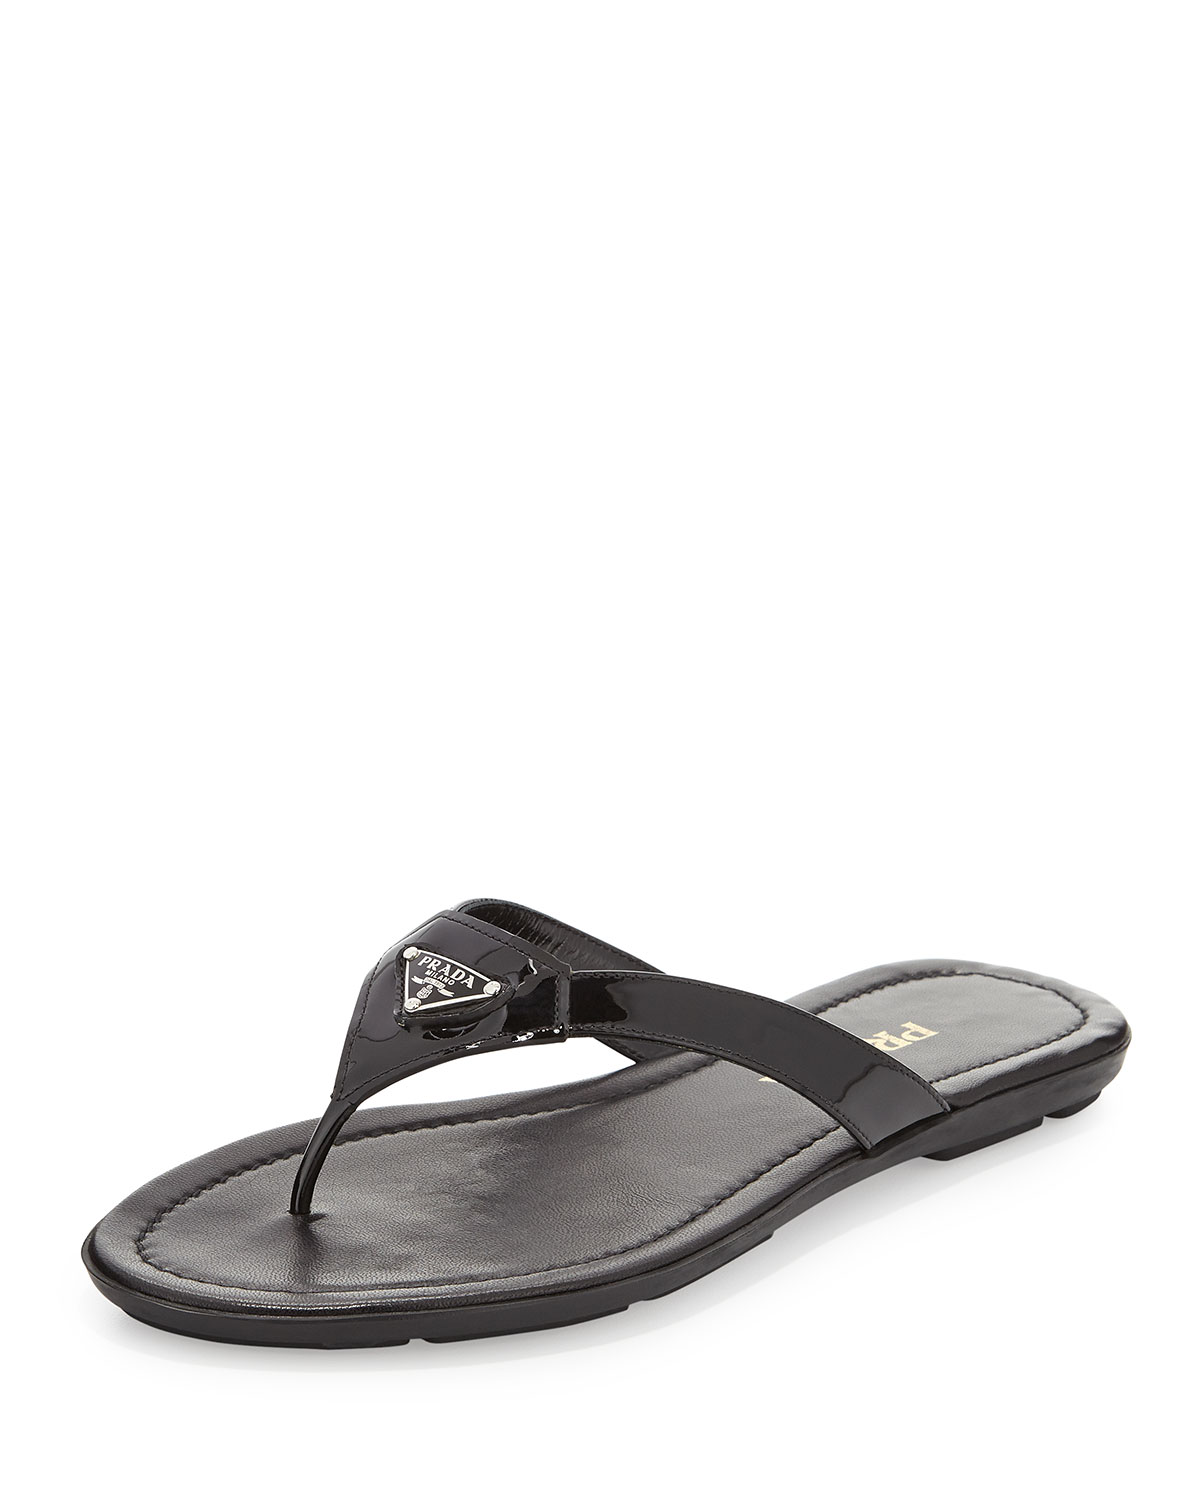 92c80d58dbc3 Prada Patent Leather Thong Sandal